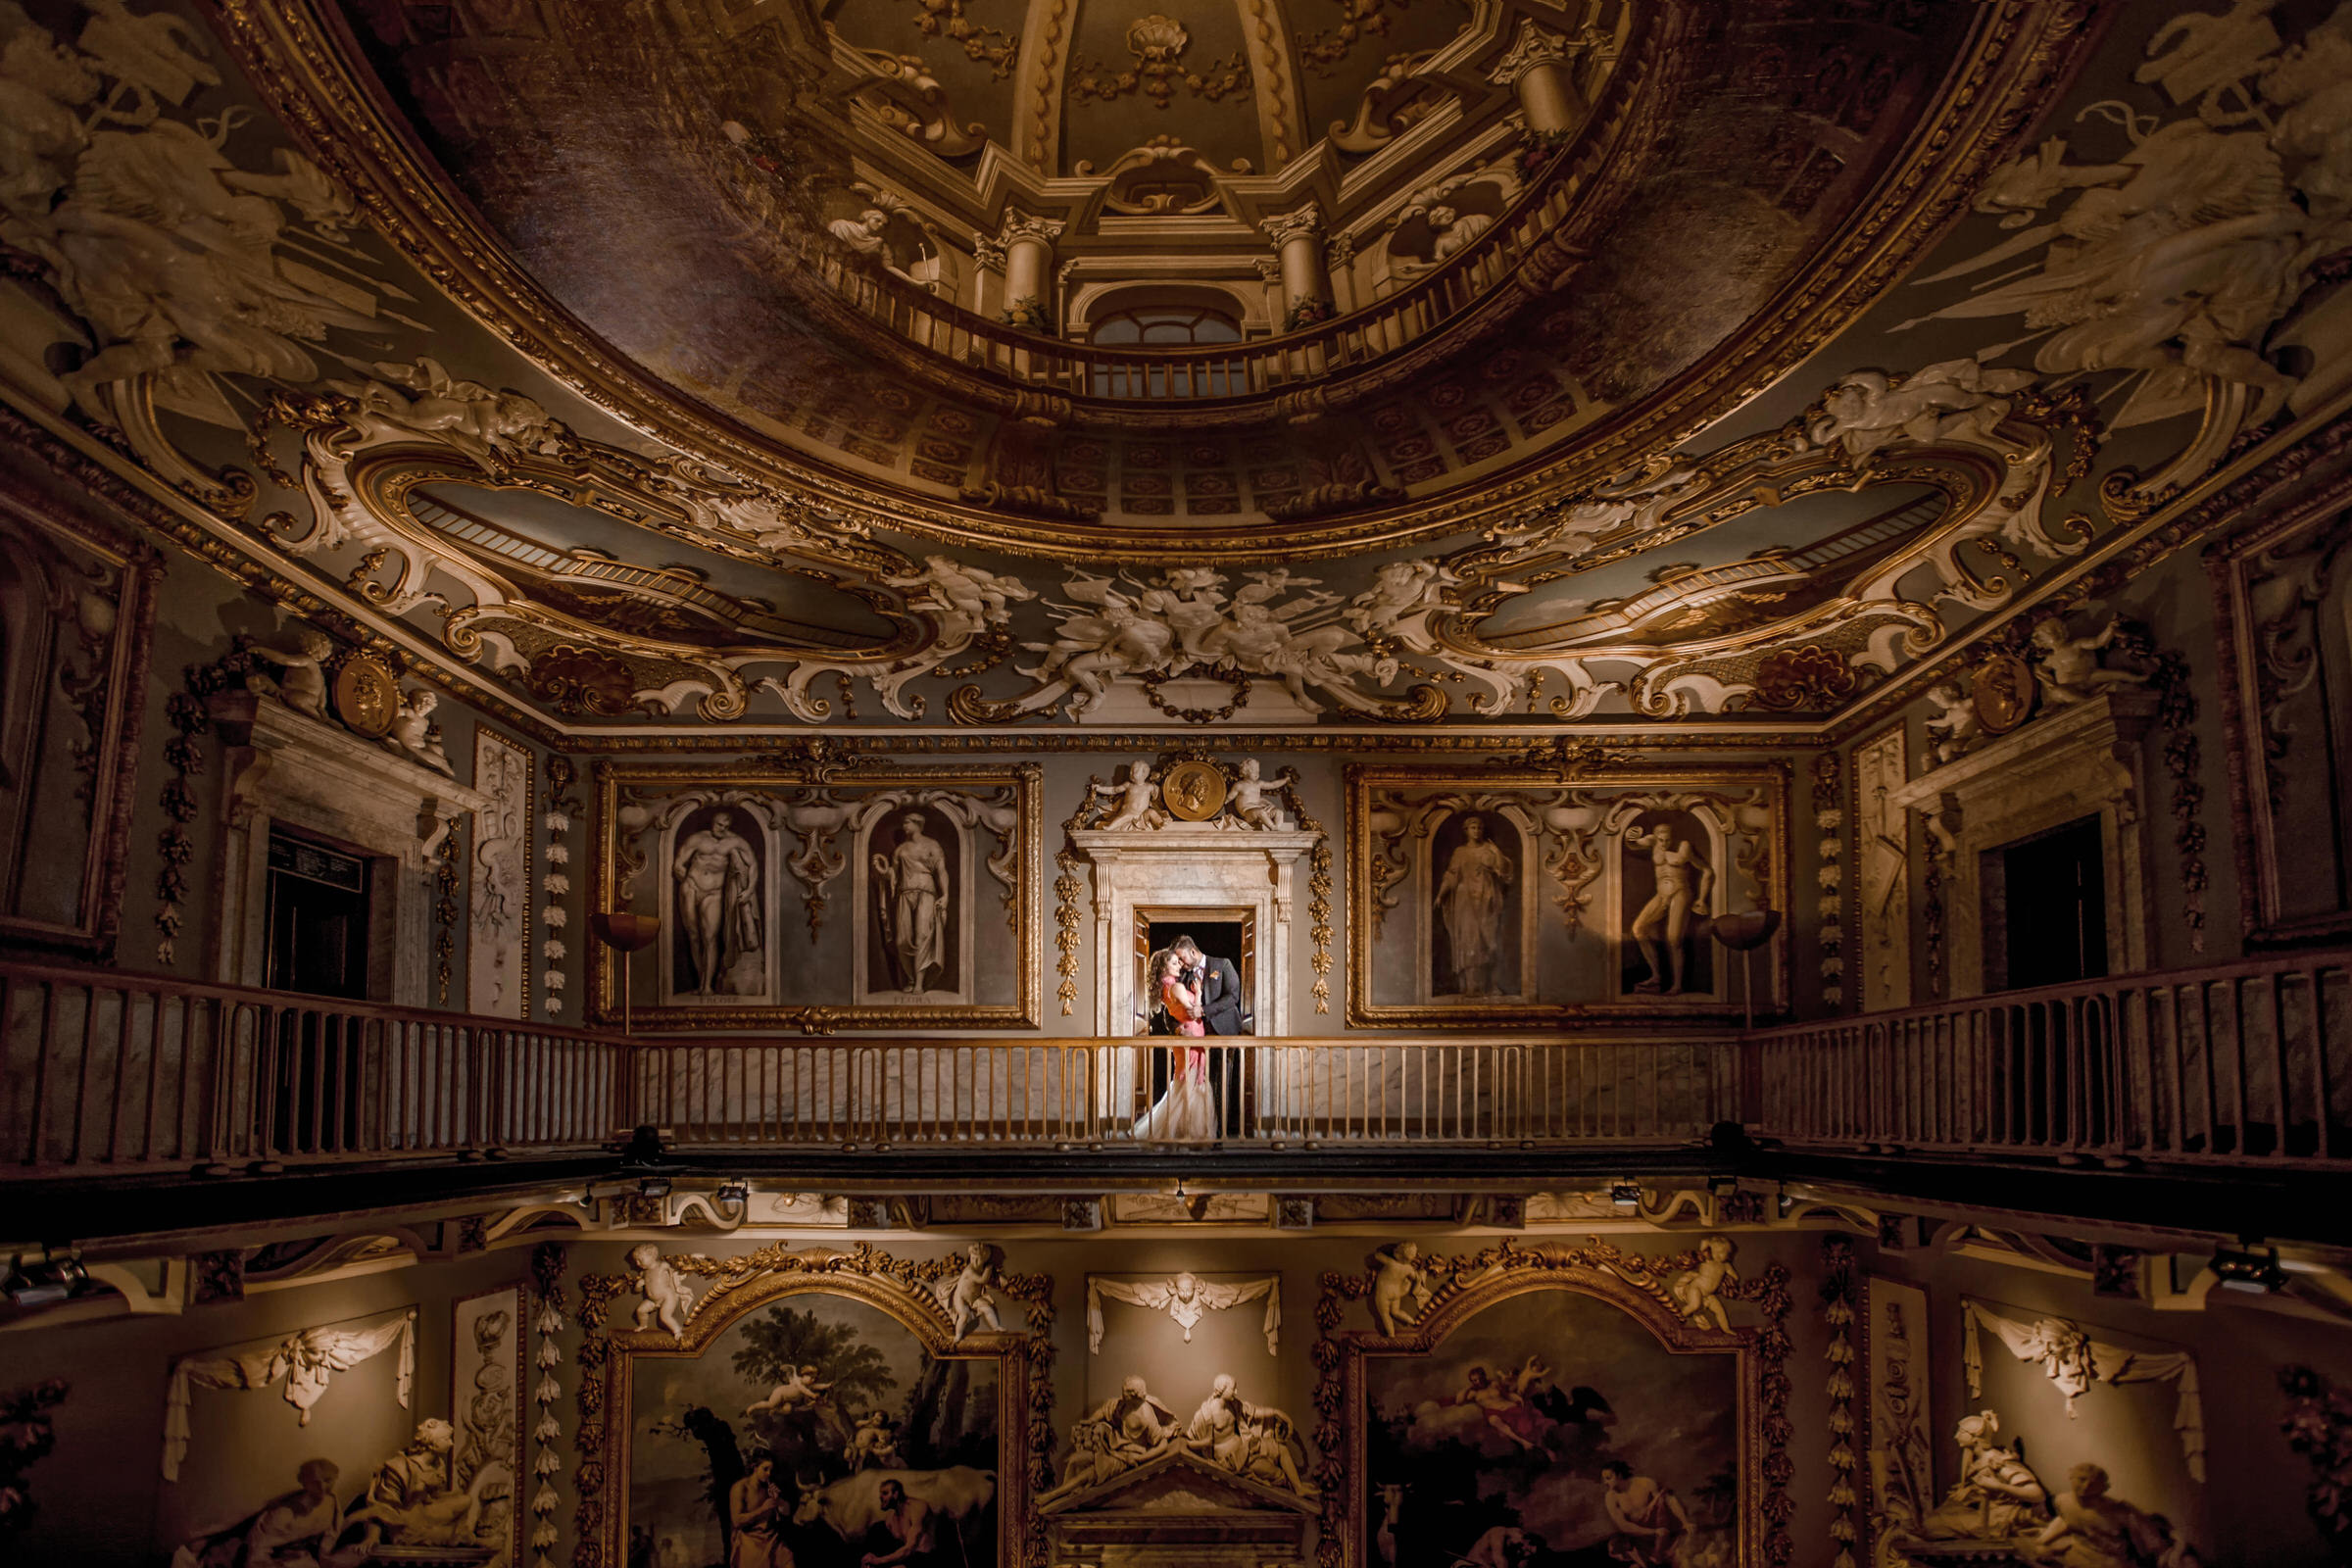 featured-couple-portrait-in-highly-ornate-interior-setting-eye-jogia-photography